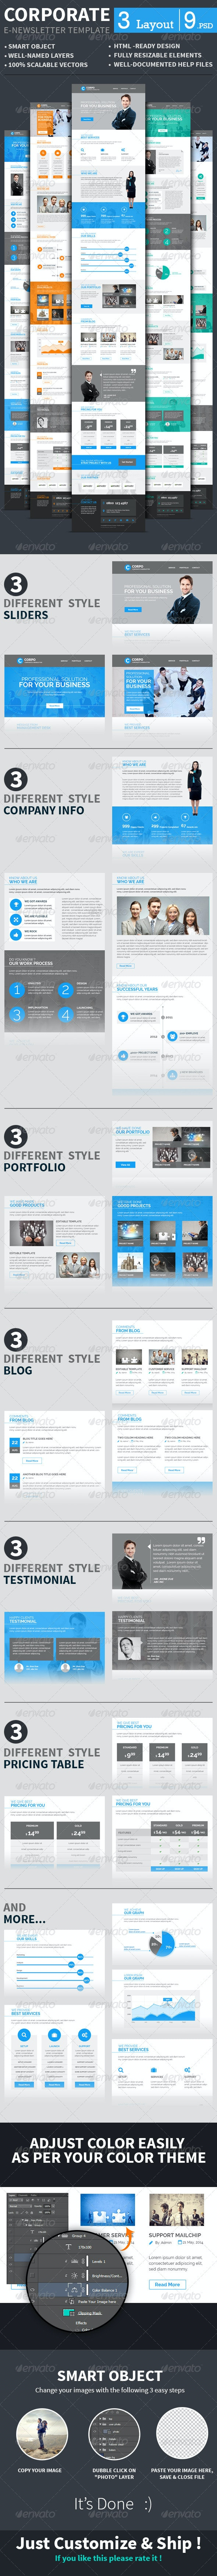 Corporate E-newsletter Template - E-newsletters Web Elements